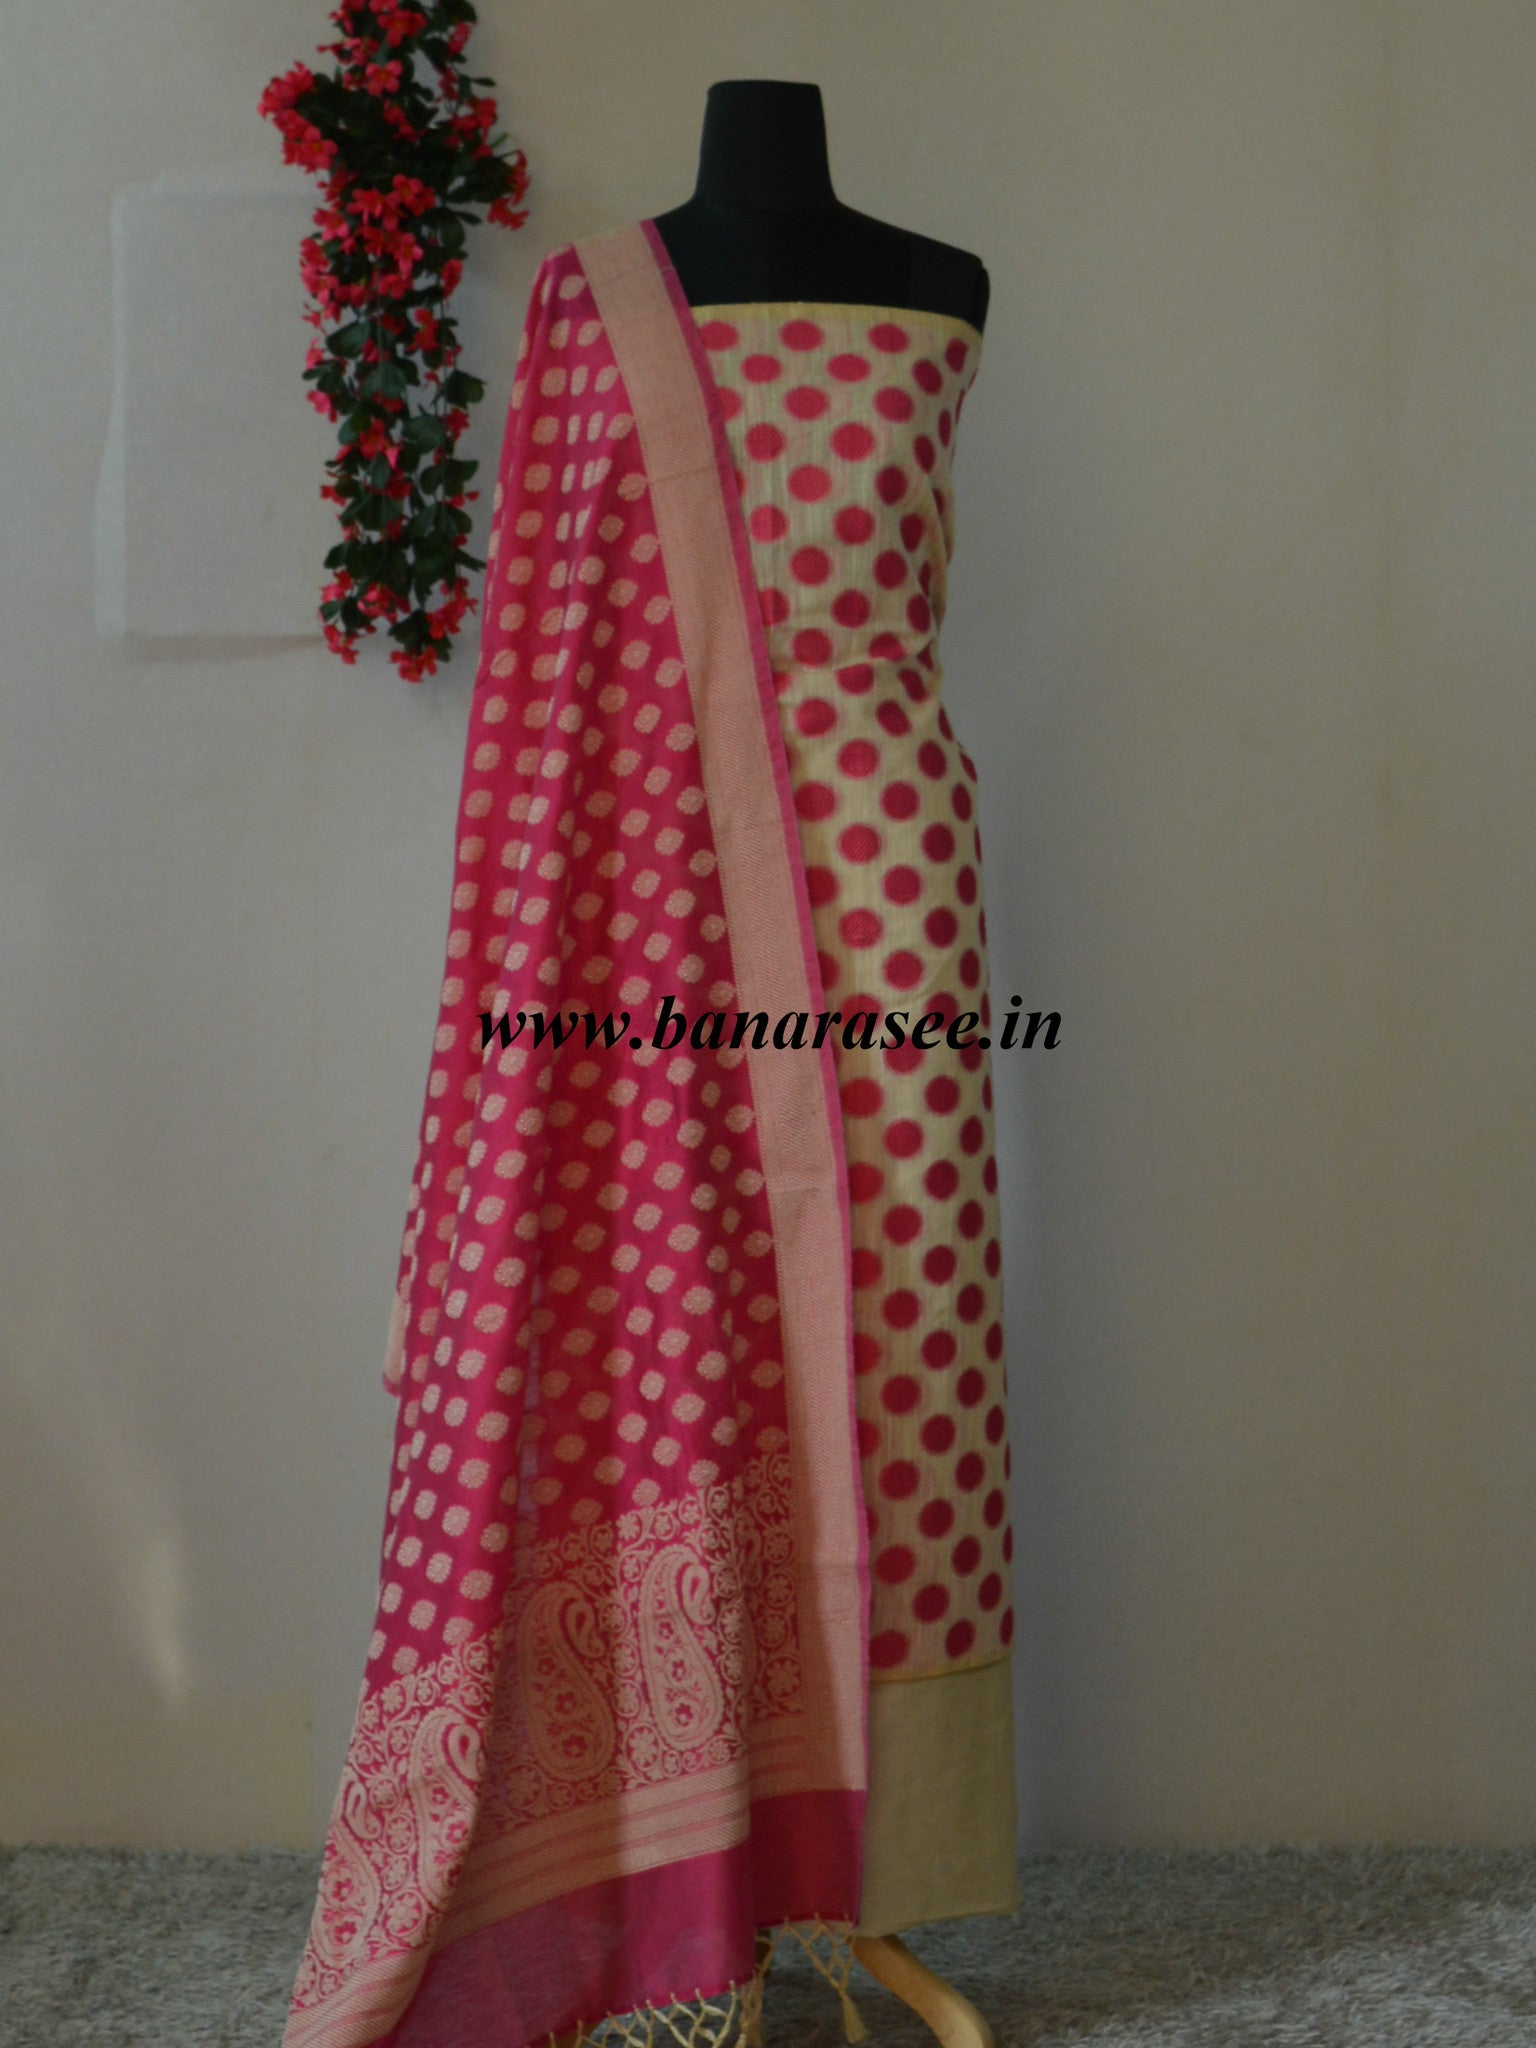 Banarasee/Banarasi Salwar Kameez Soft Cotton Resham Woven Fabric With Pink Polka Dot-Beige